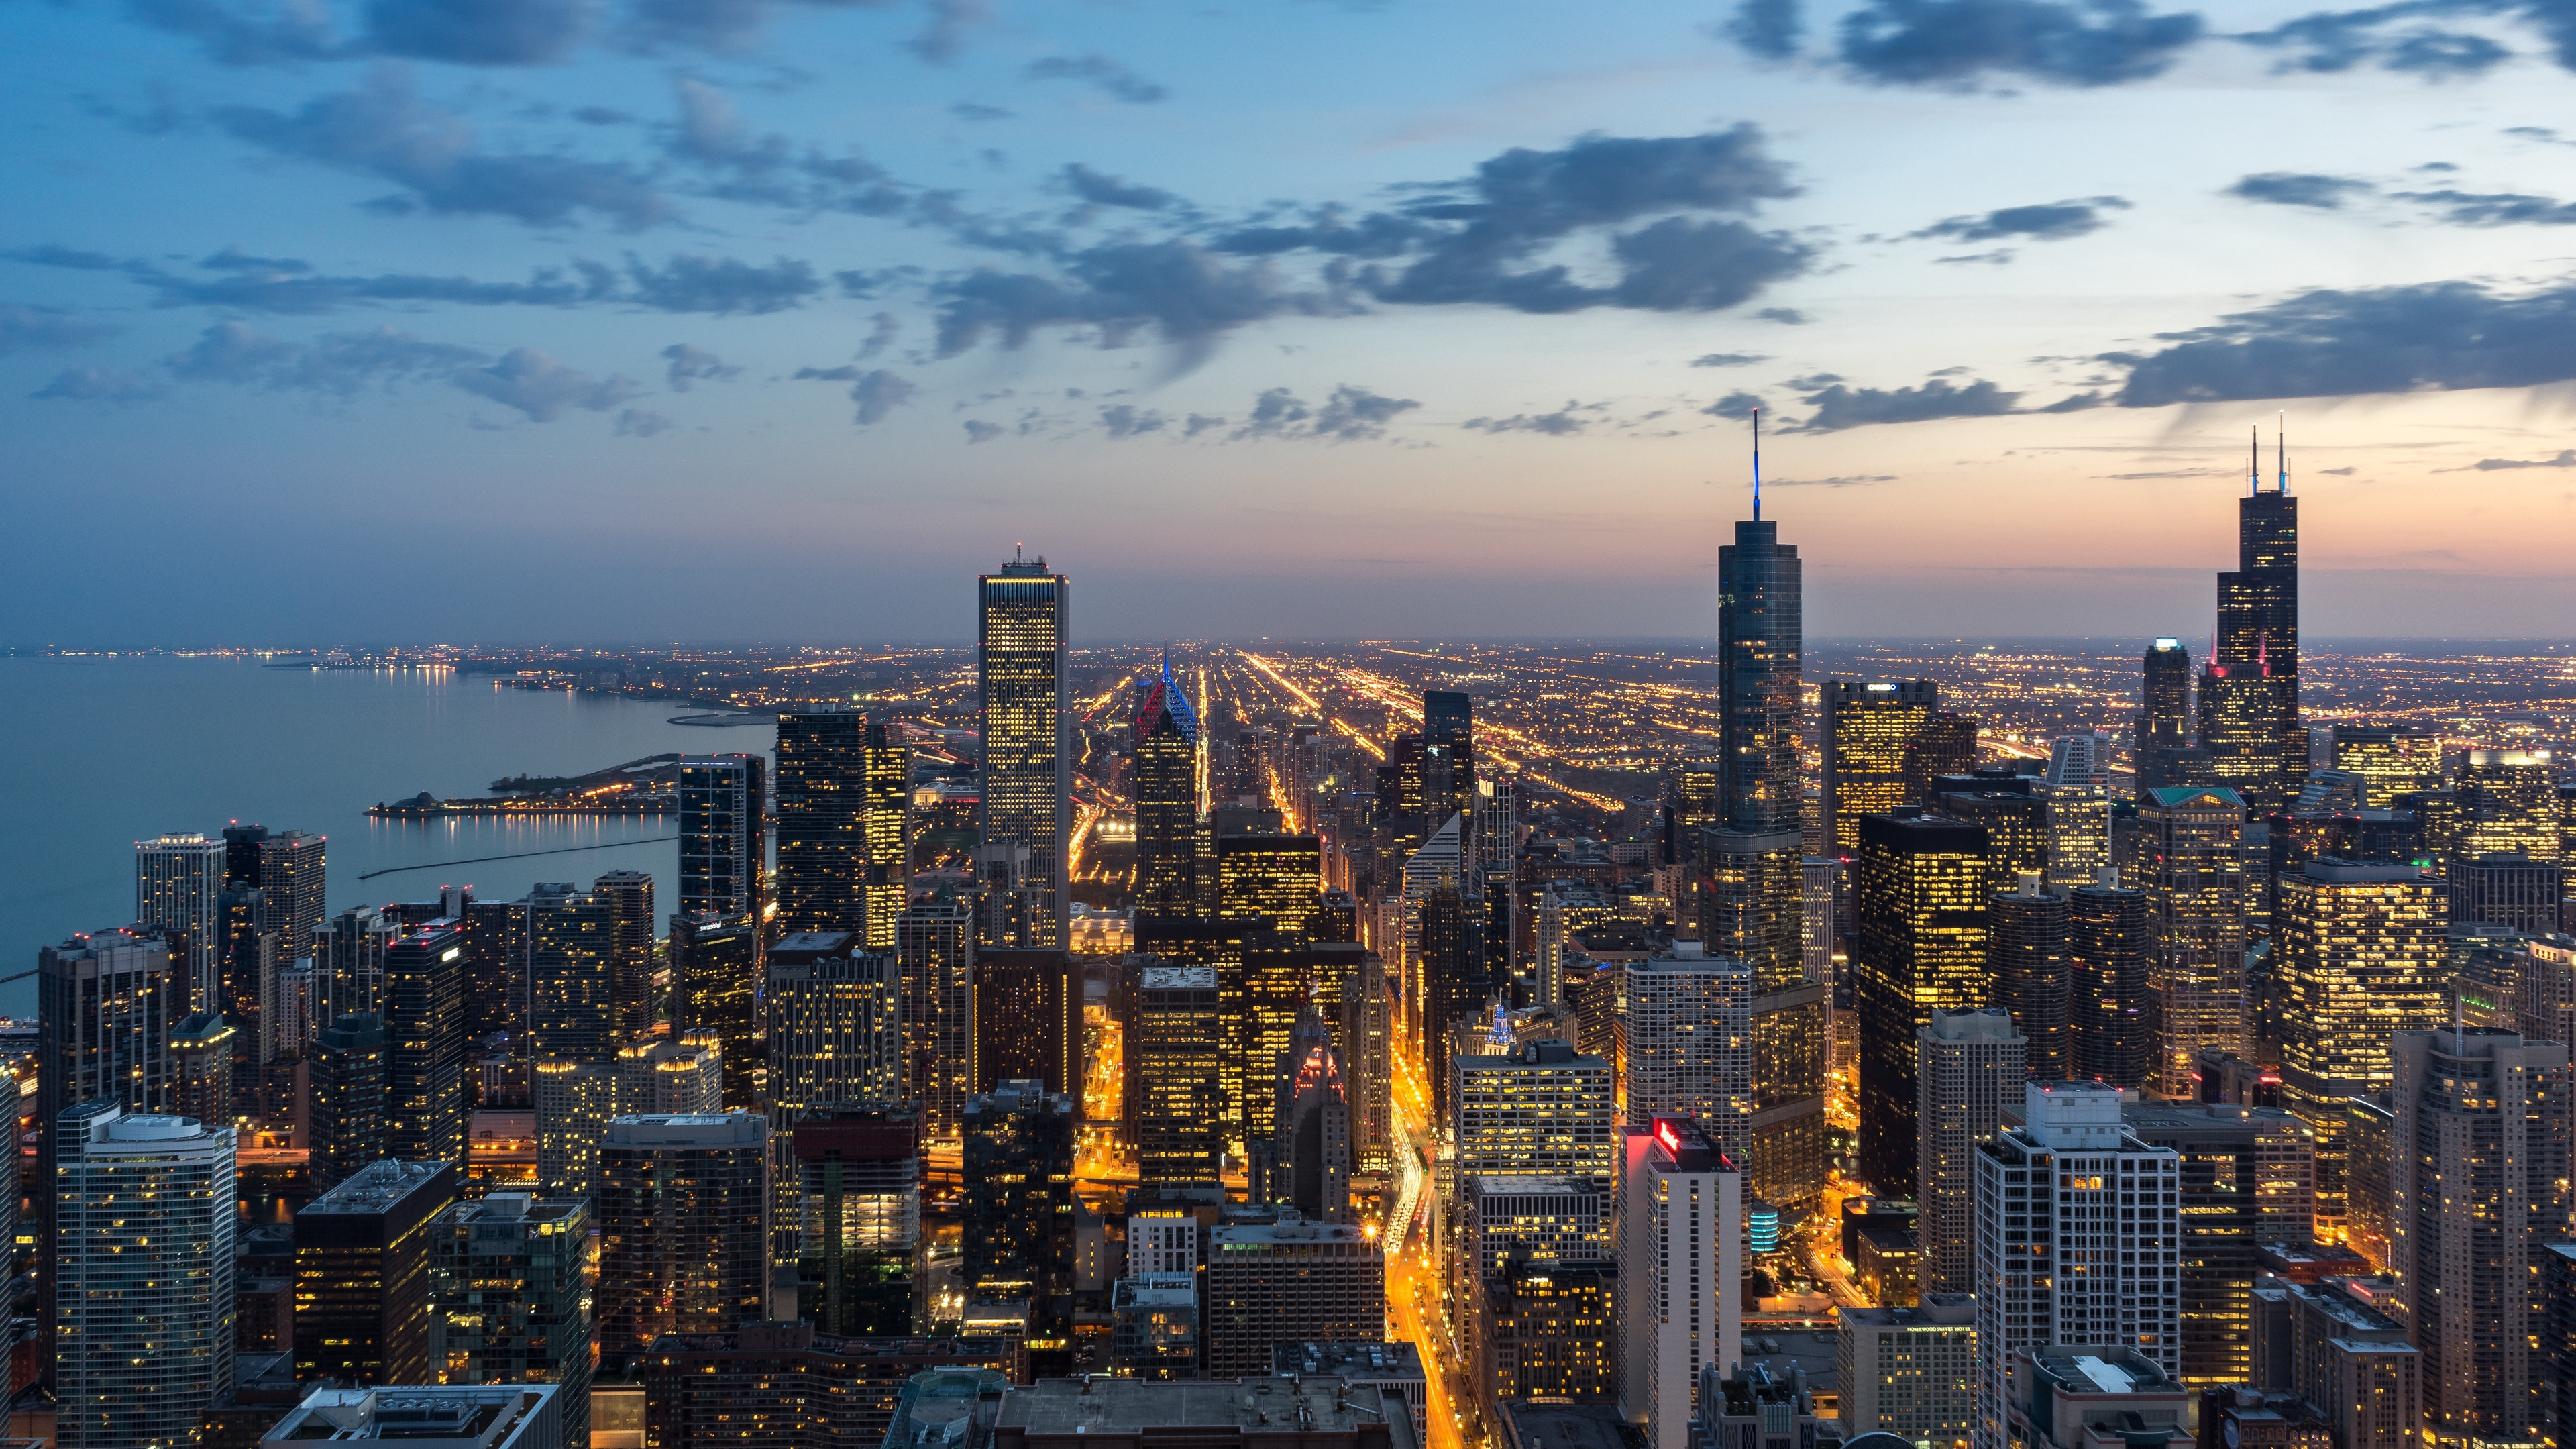 chicago usa skyscrapers night view from above 4k 1538068469 - chicago, usa, skyscrapers, night, view from above 4k - USA, Skyscrapers, Chicago